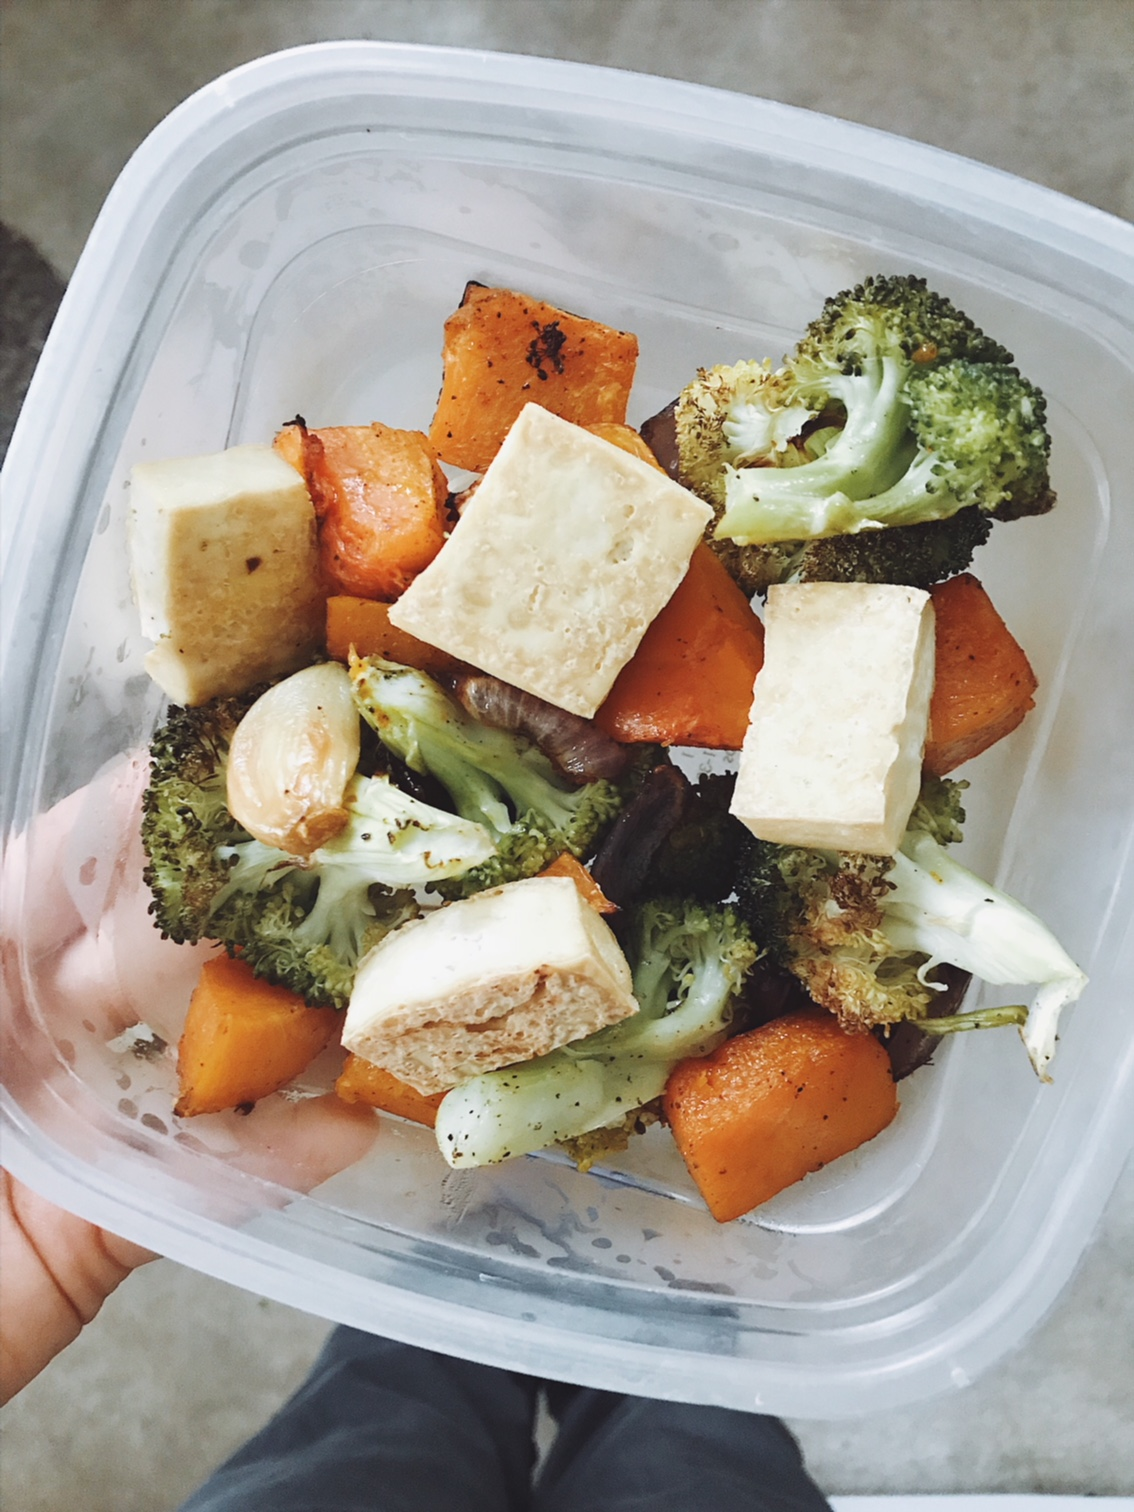 PERFECT for meal prep and packed lunches!